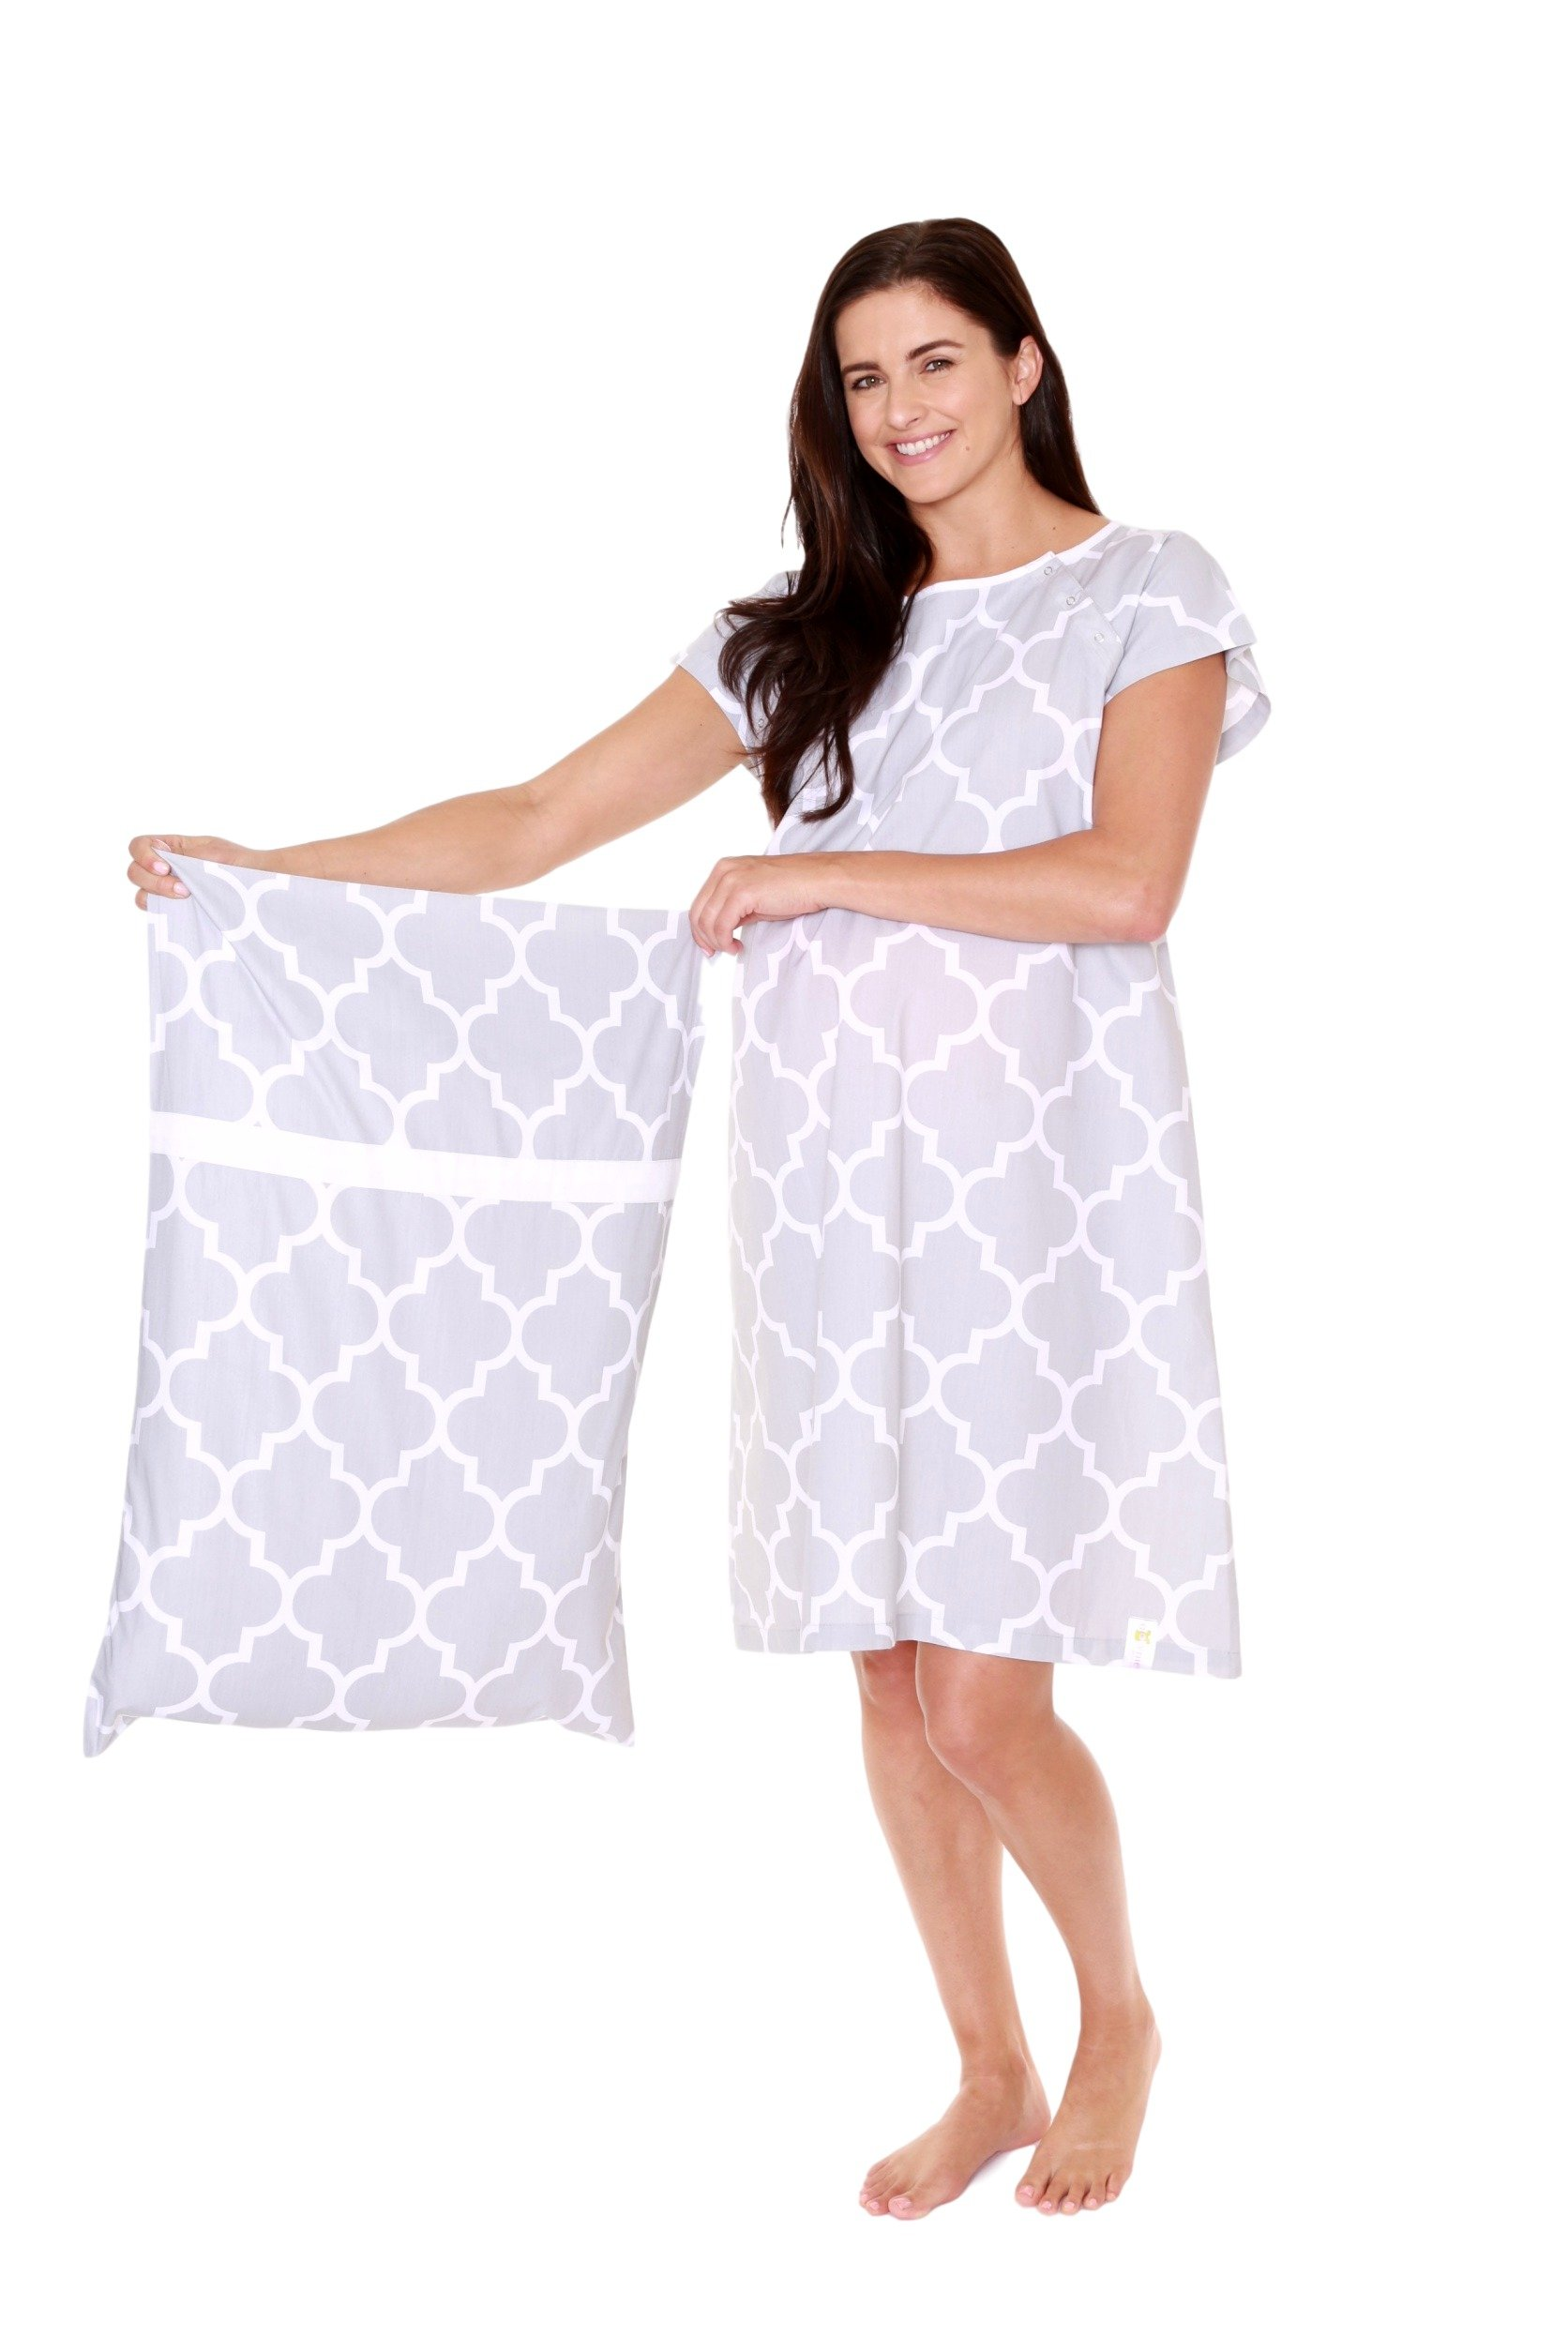 Gownies - Delivery Maternity Hospital Gown Set Labor Kit with ...